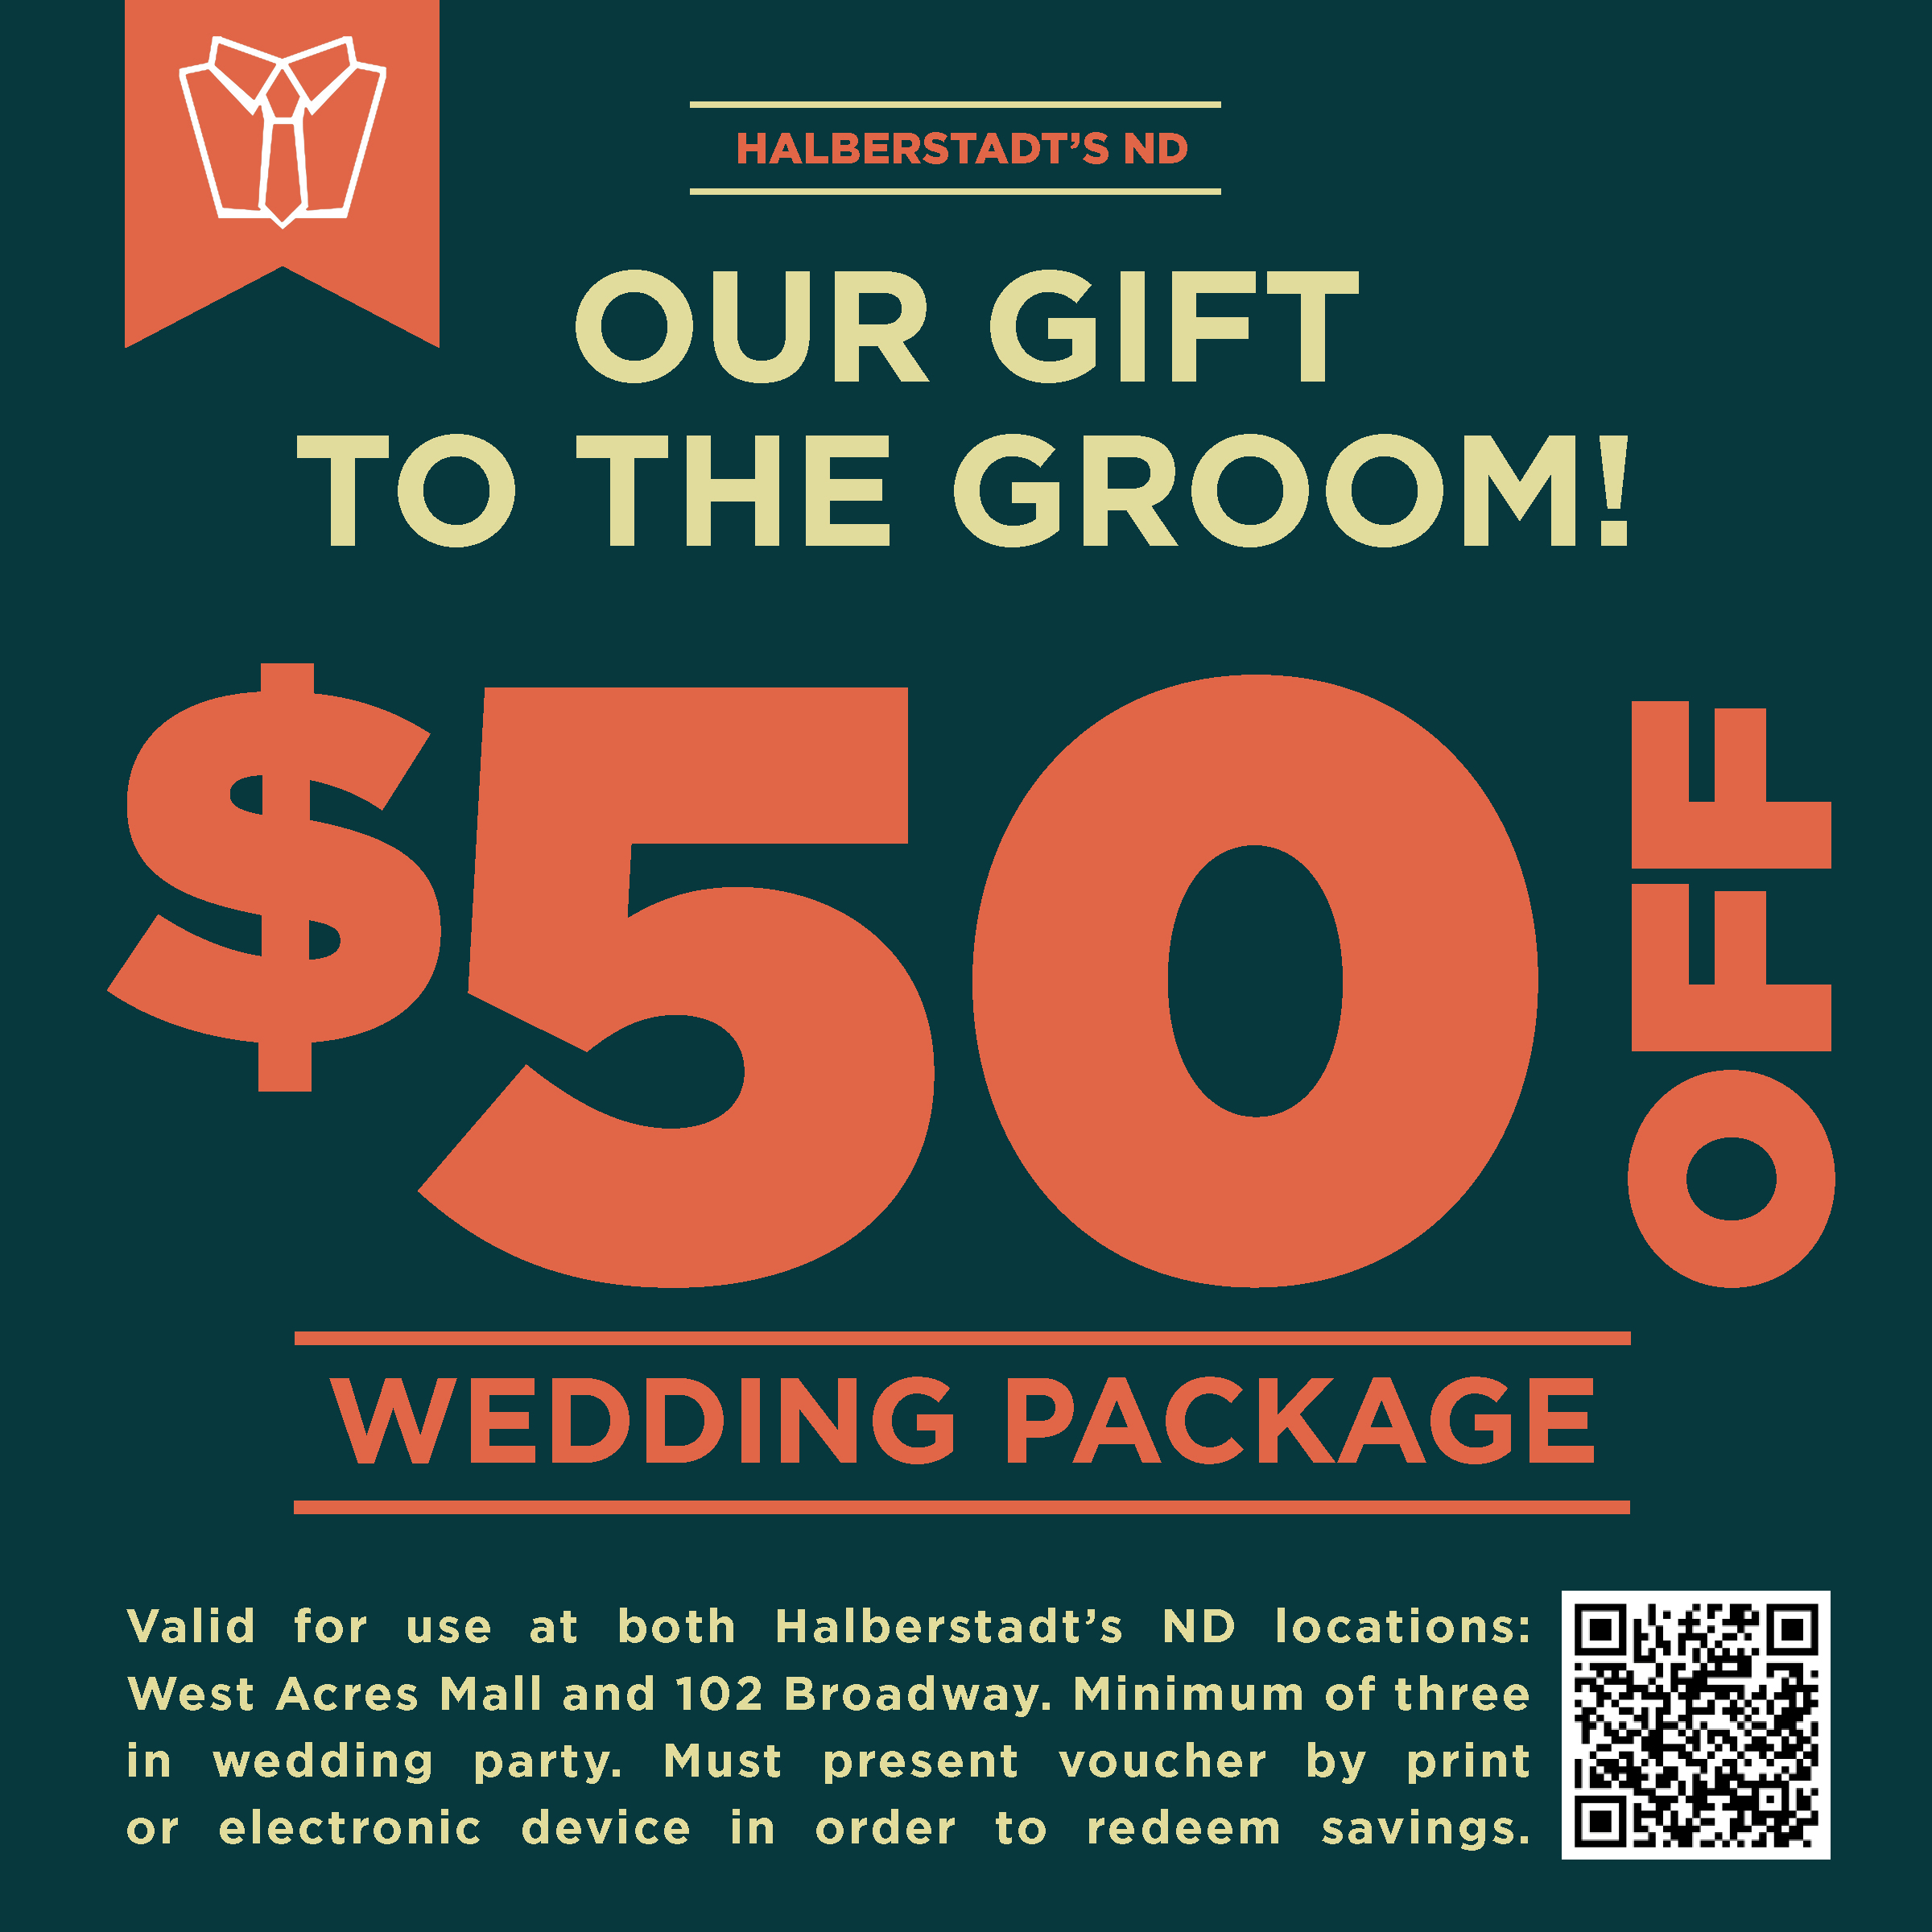 Wedding Coupon - Final - 10.27.17.jpg